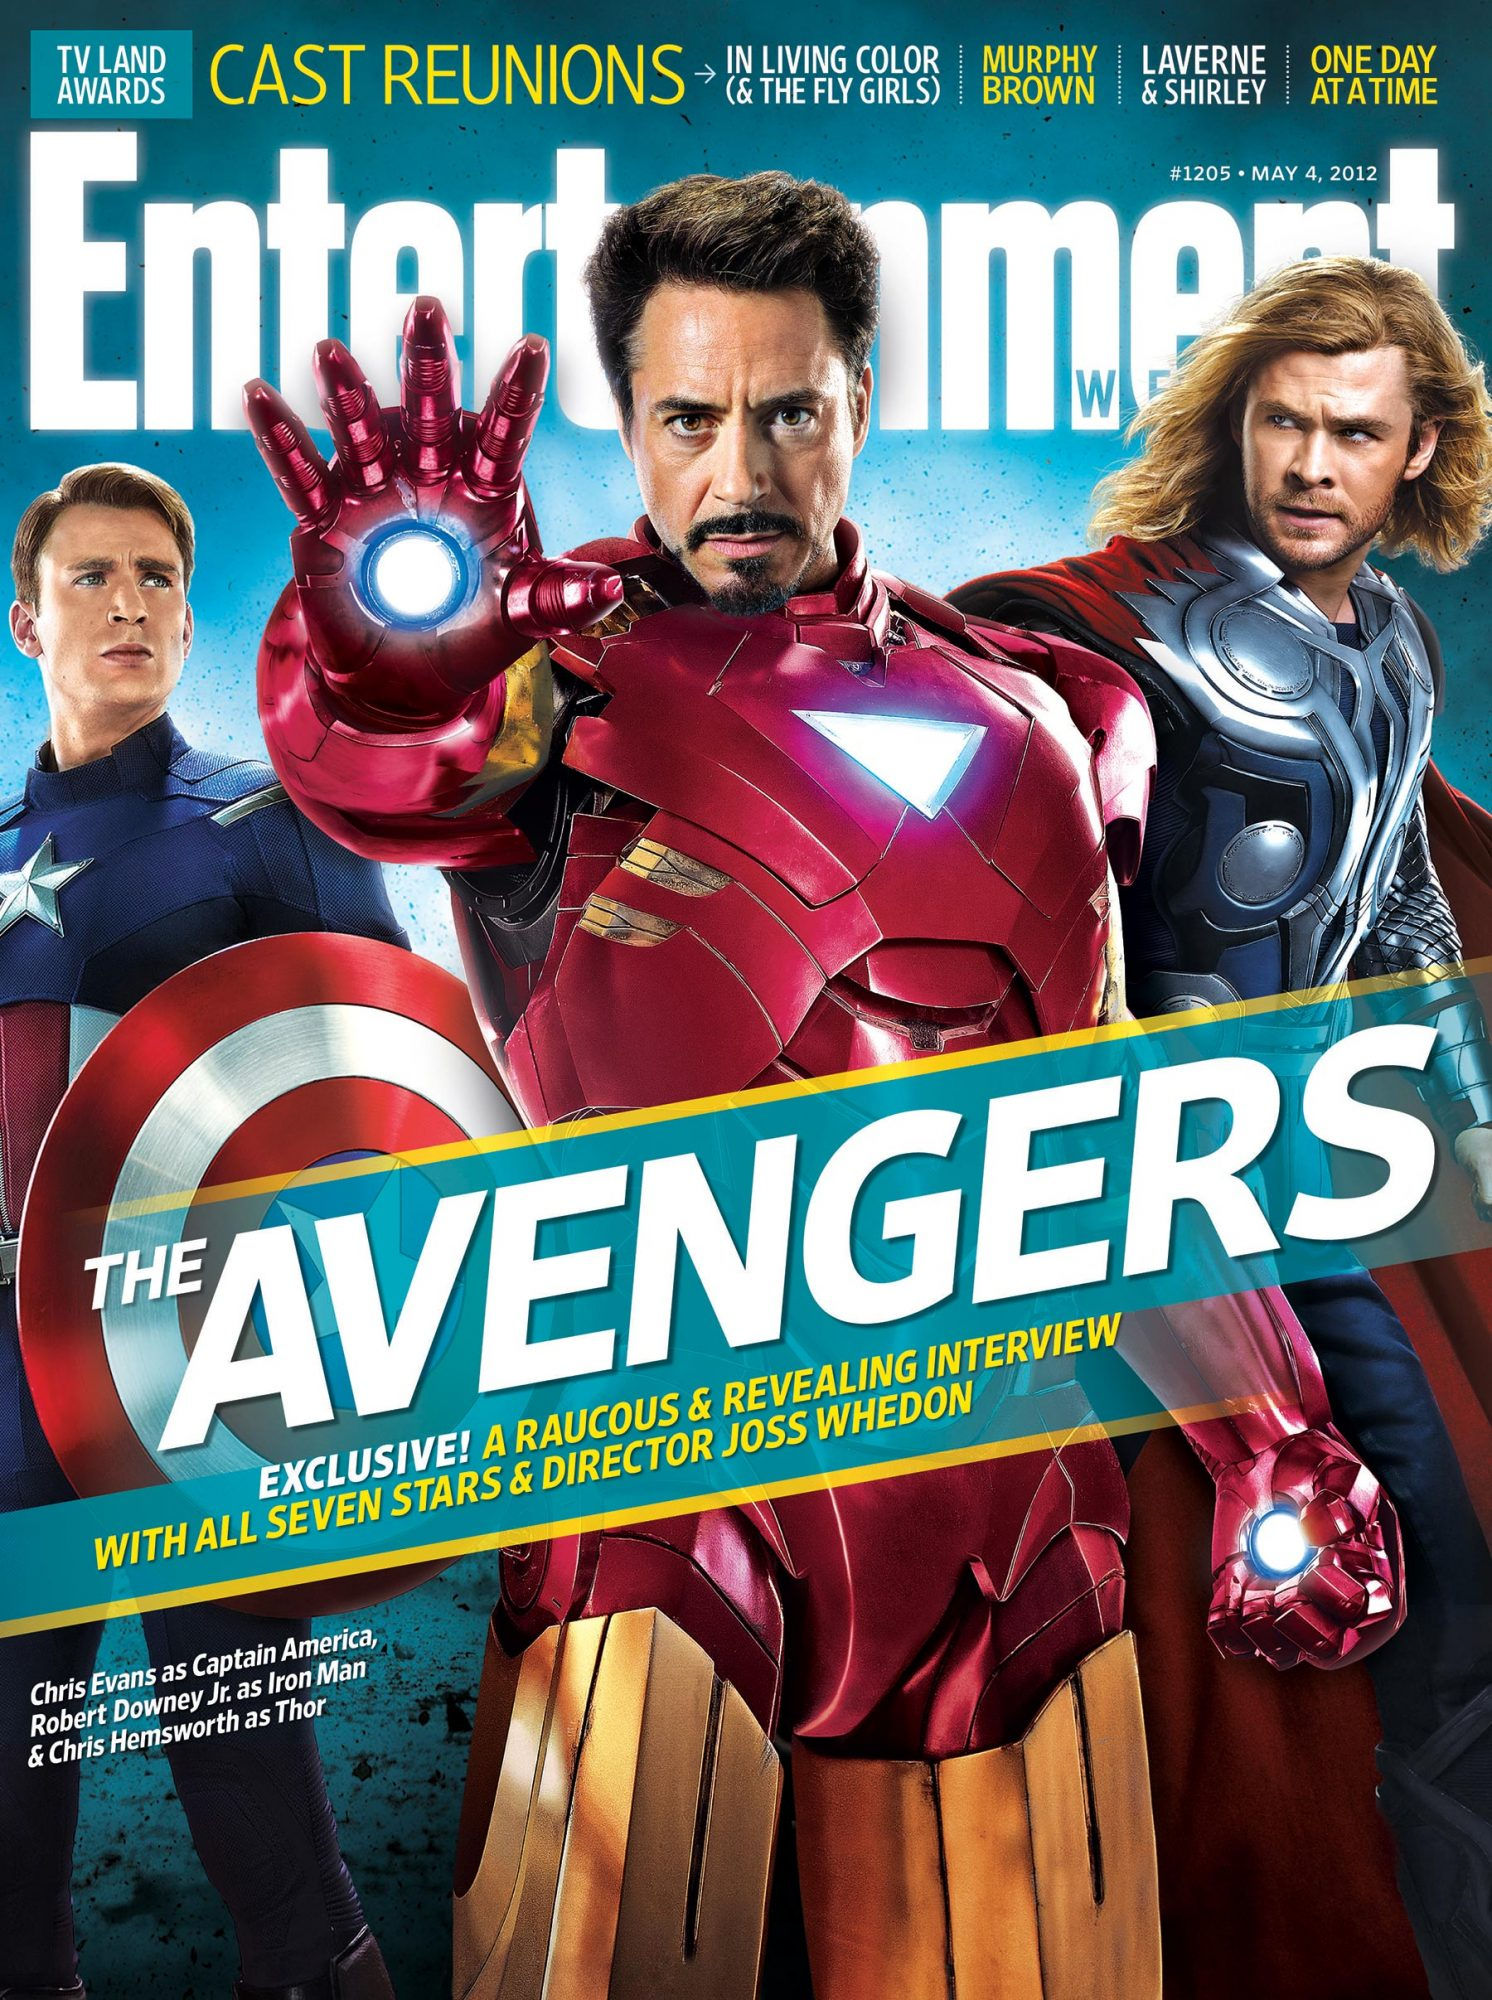 Entertainment WeeklyMay 4, 2012 - The AvengersIssue #1205